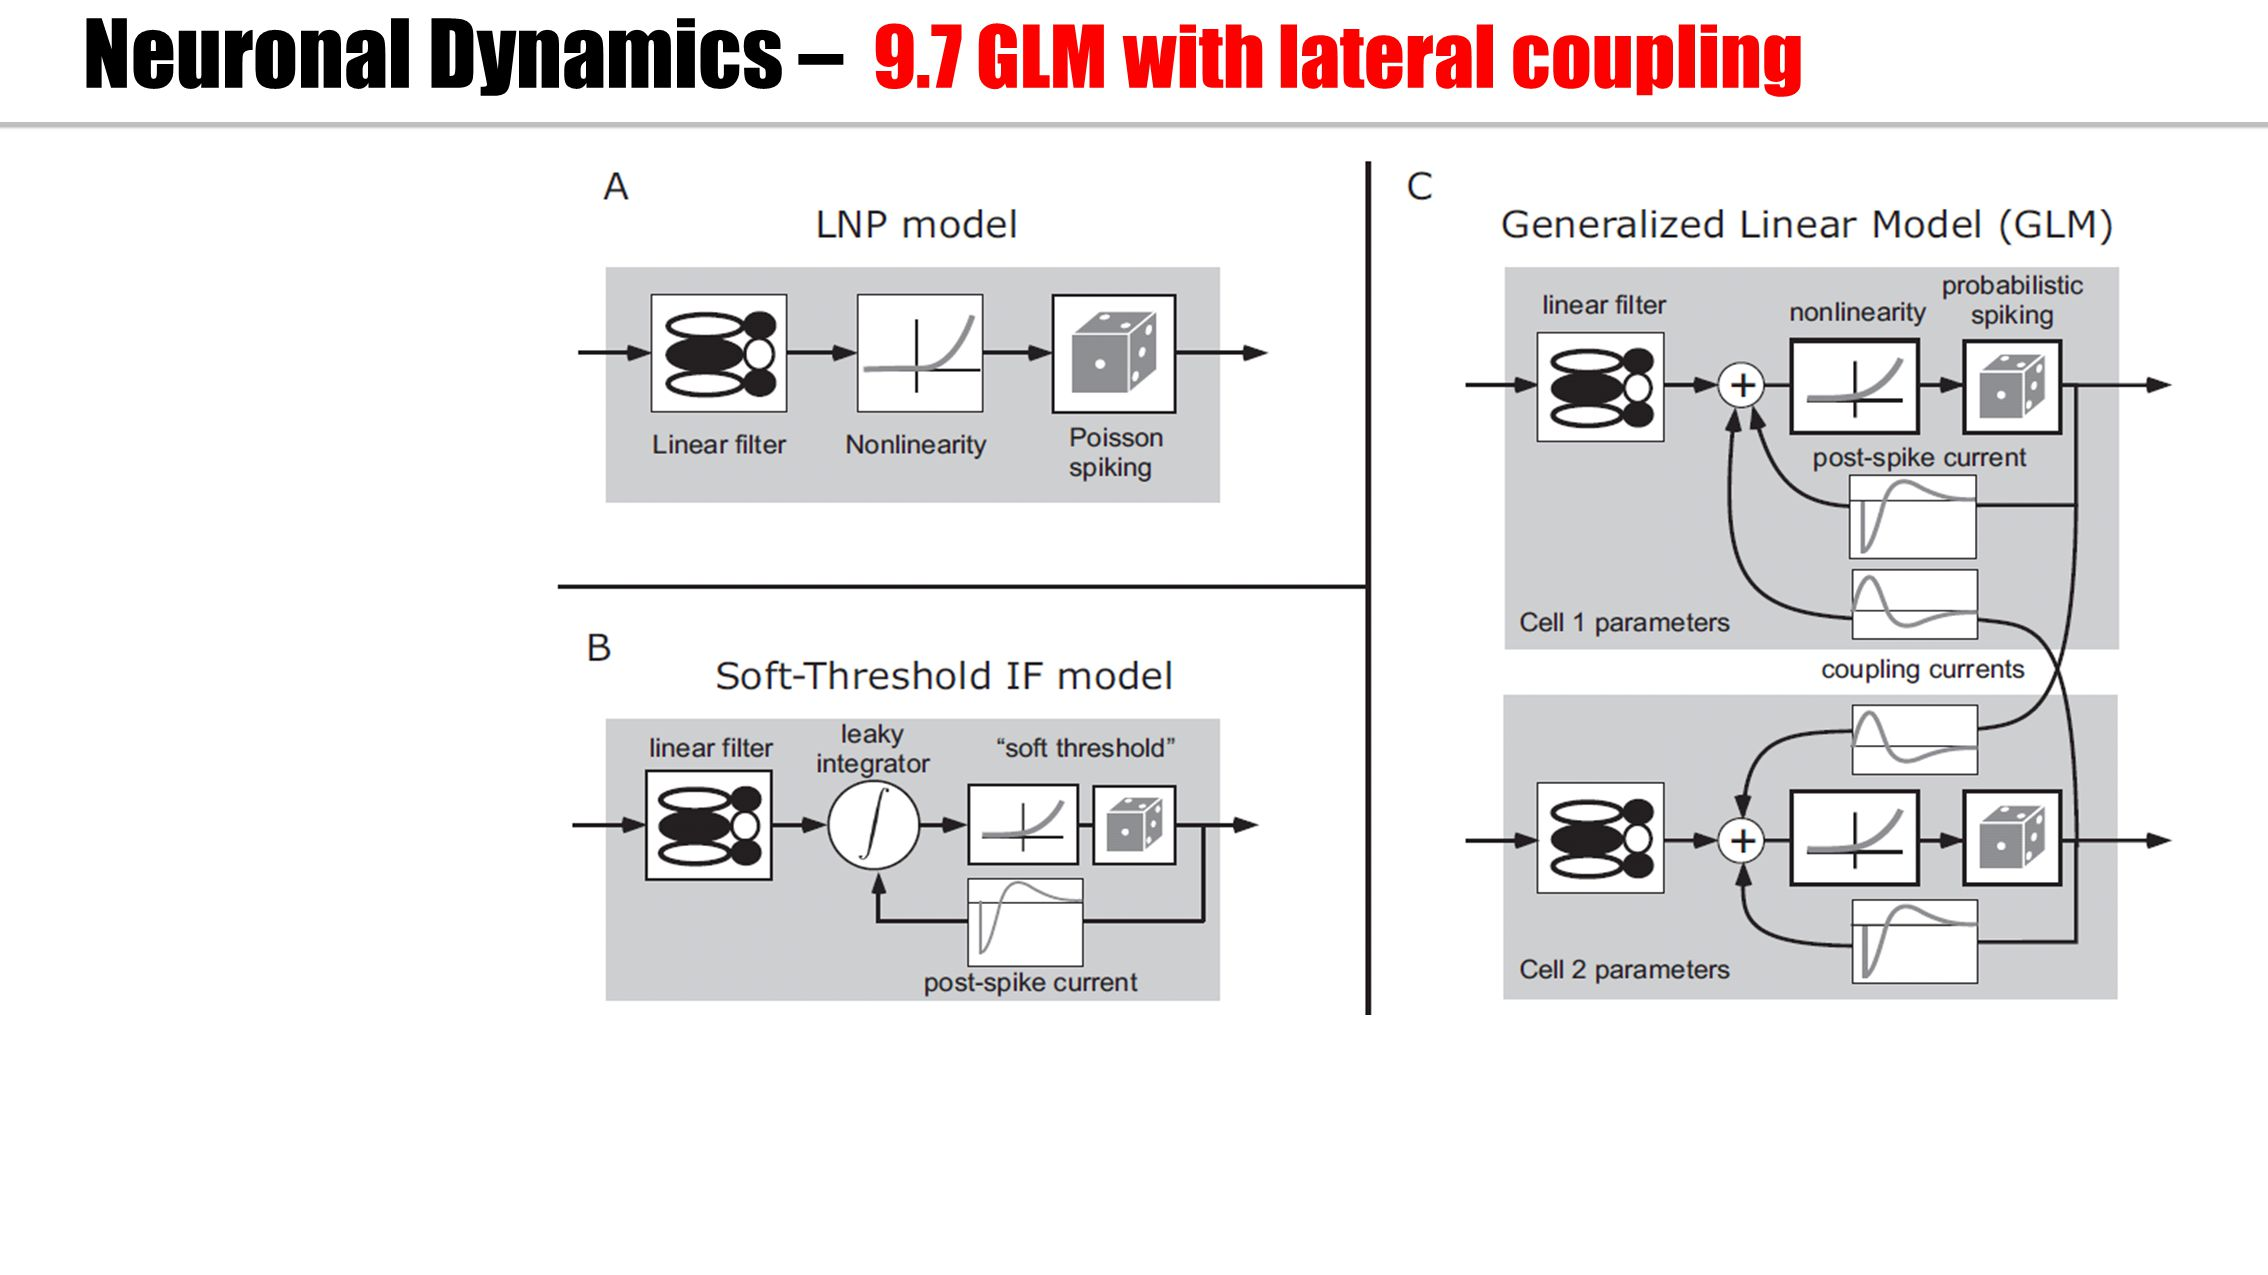 Neuronal Dynamics – 9.7 GLM with lateral coupling